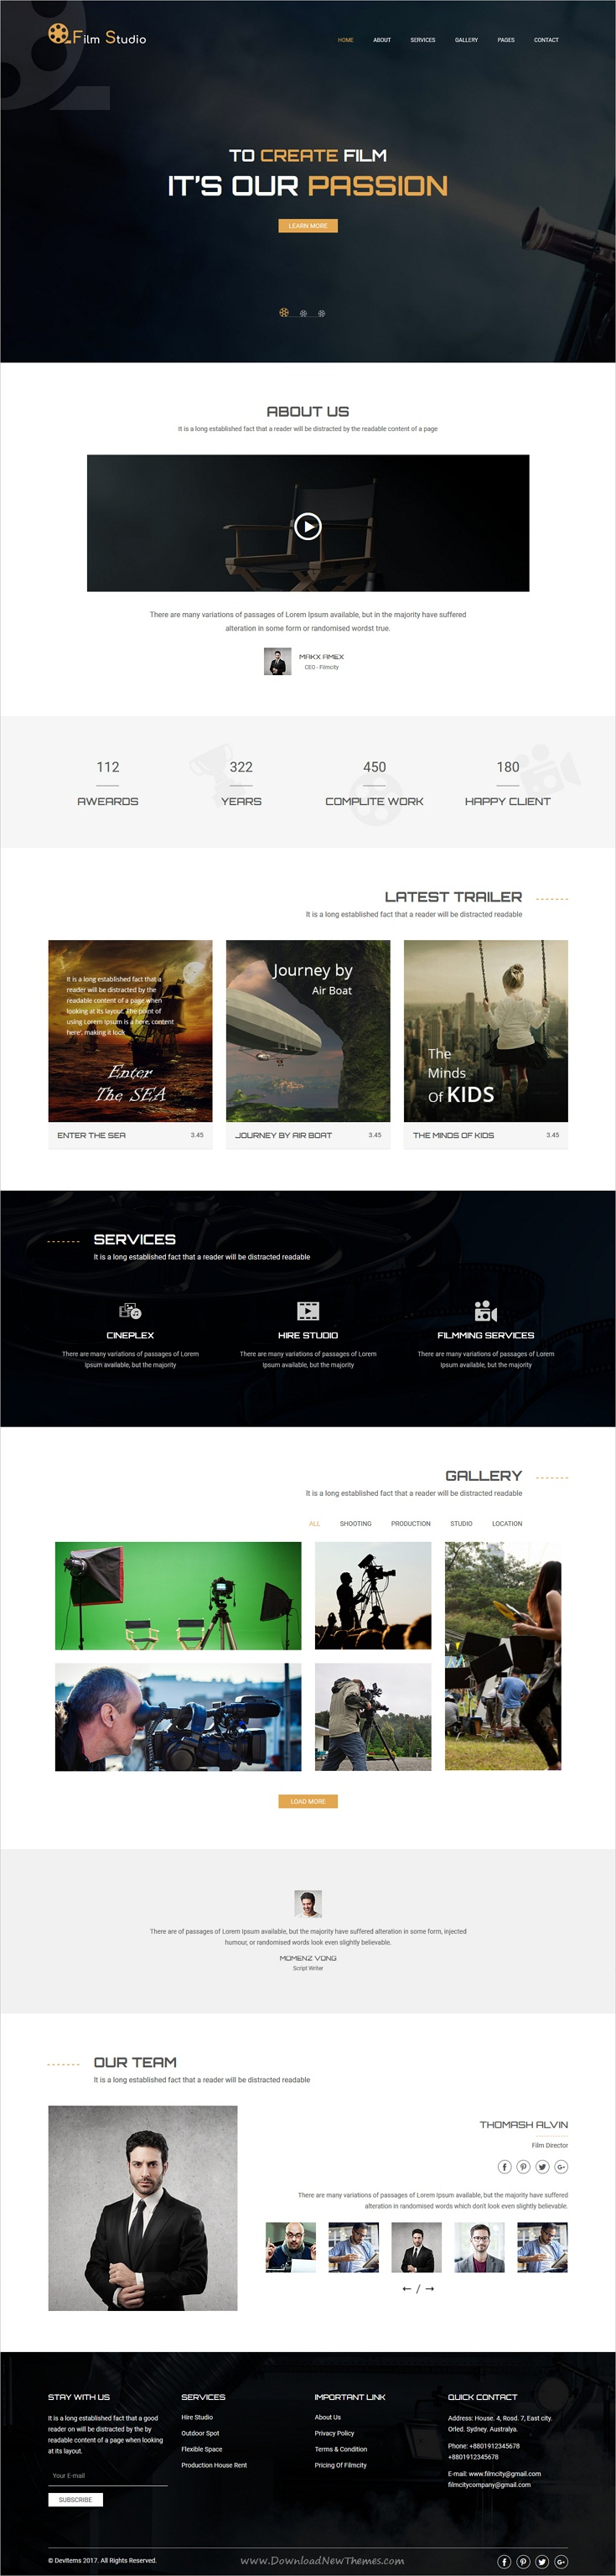 Film studio movie production film studio creative film studio is clean and modern design bootstrap theme for film campaign and movie marketing website download now maxwellsz